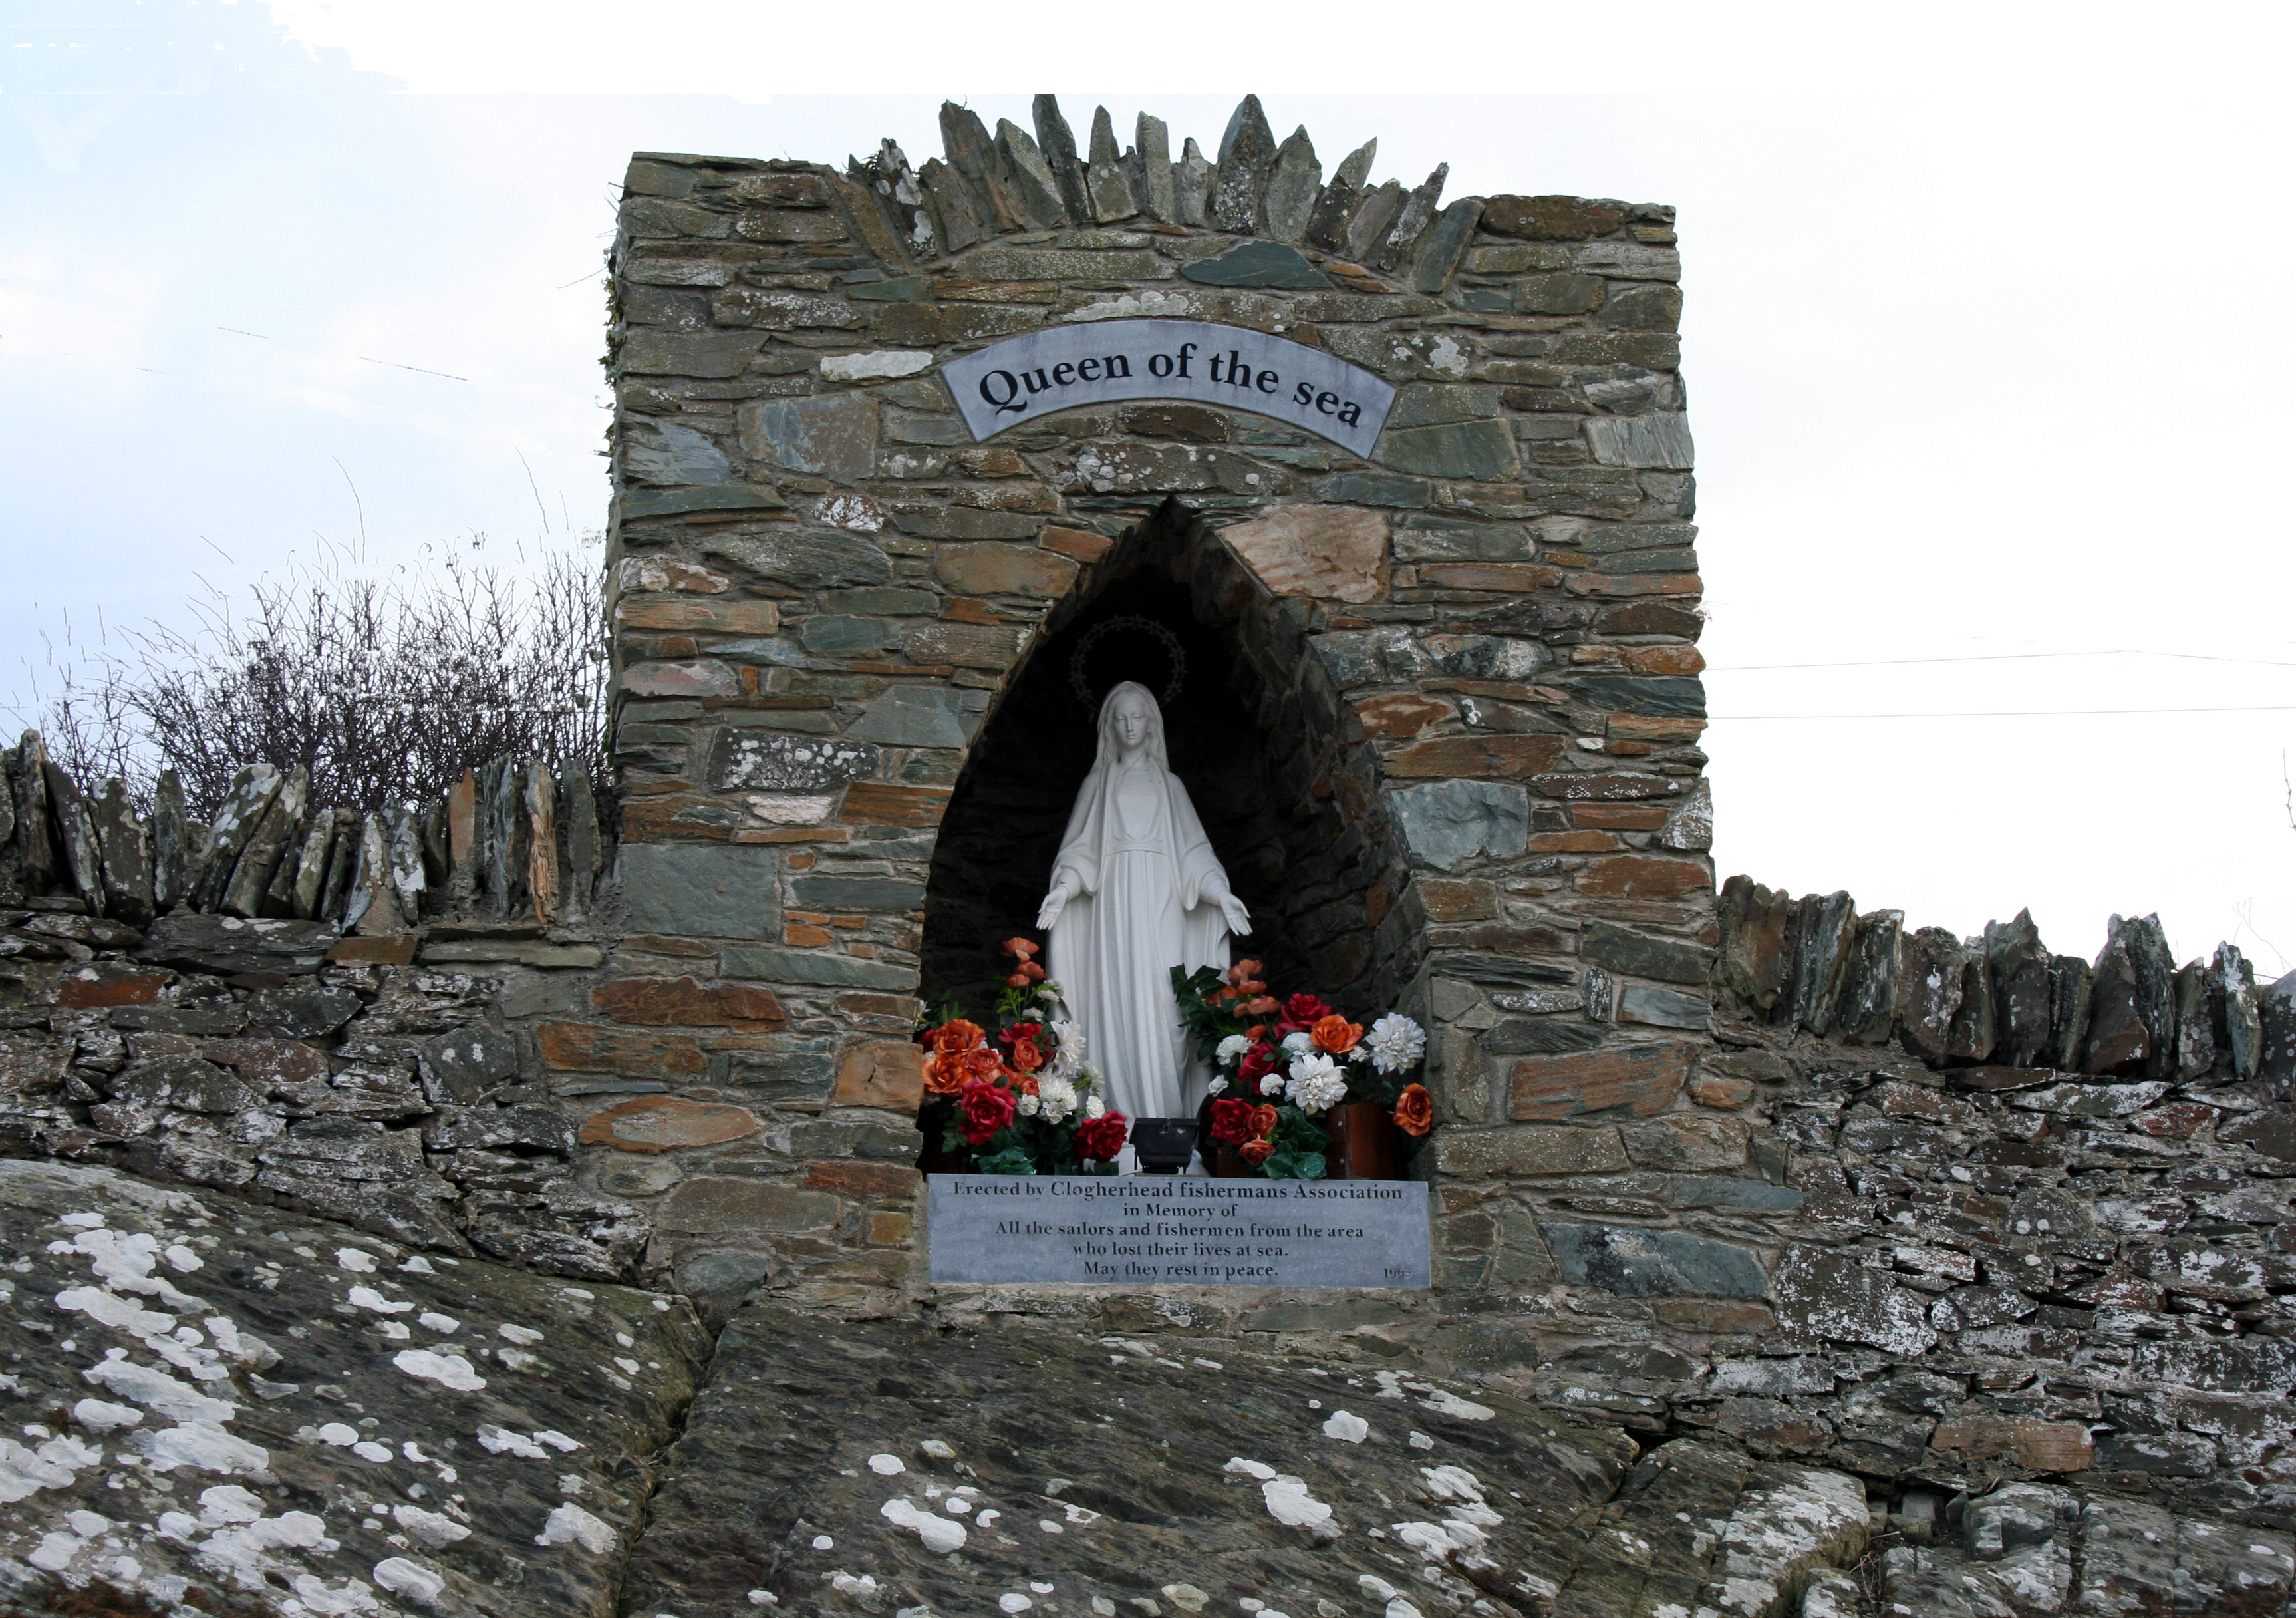 Queen of the sea memorial